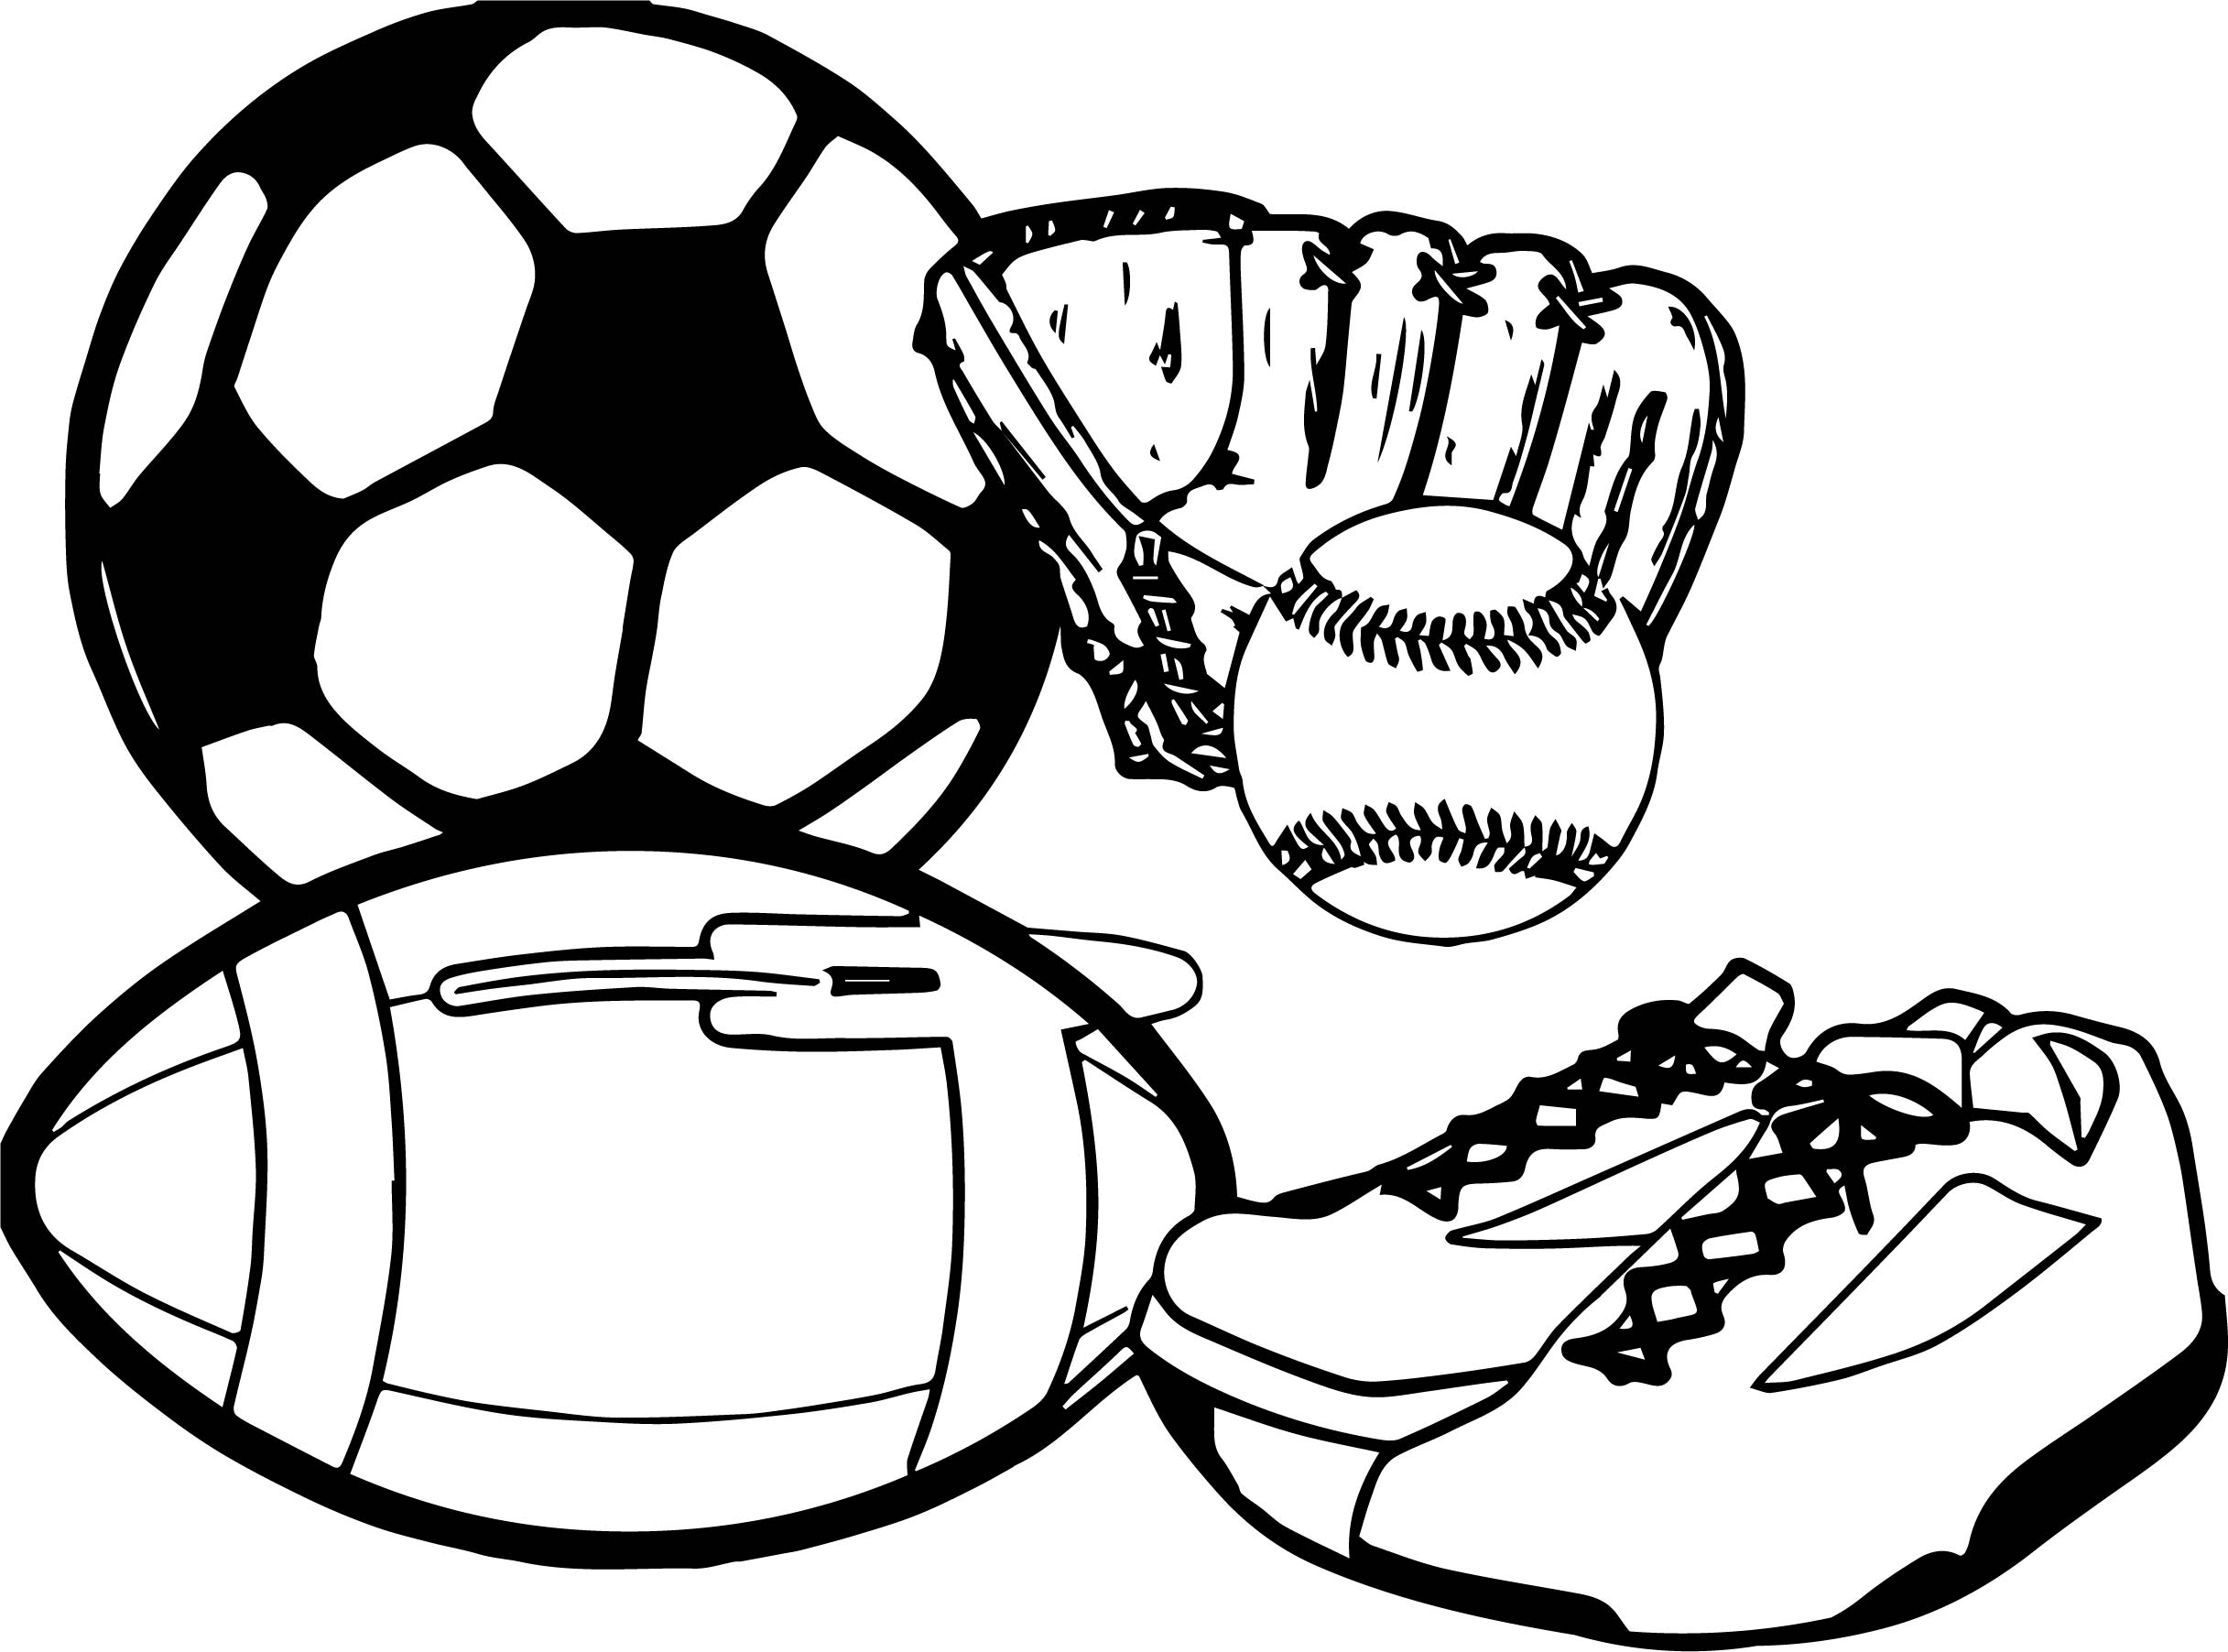 Activity Sport Coloring Page | Wecoloringpage